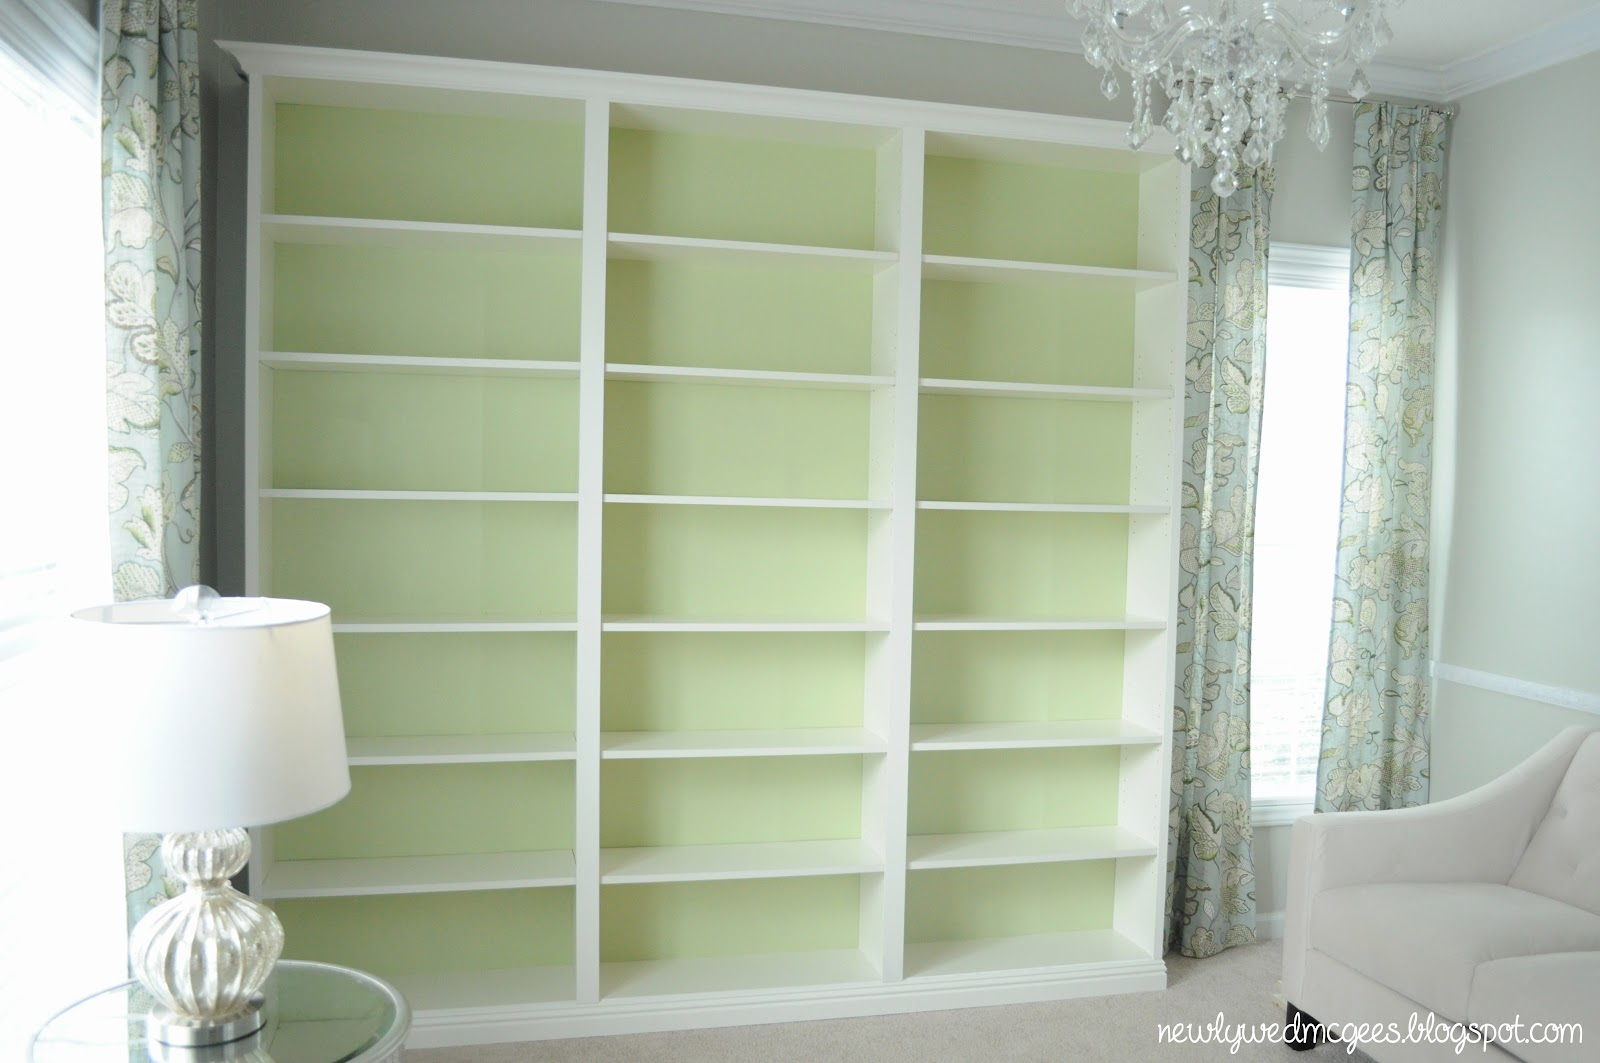 not so newlywed mcgees built in bookshelves. Black Bedroom Furniture Sets. Home Design Ideas